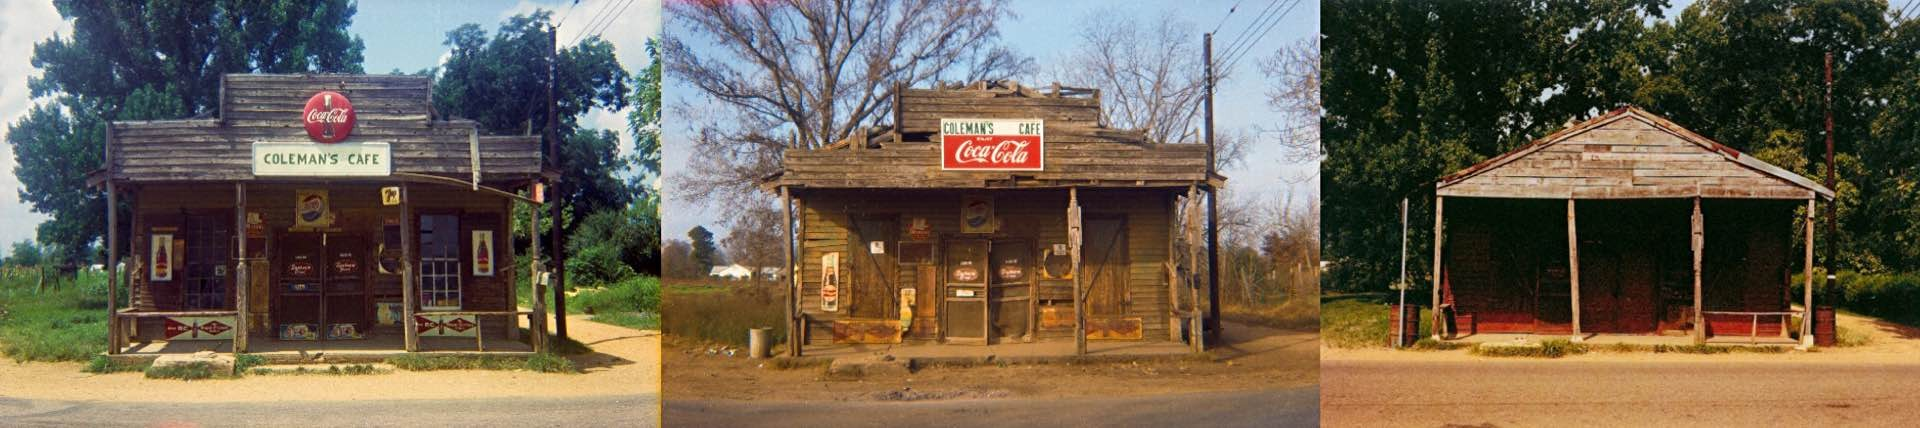 Photos: William Christenberry (years taken, from left to right: 1967, 1971, and 1980)